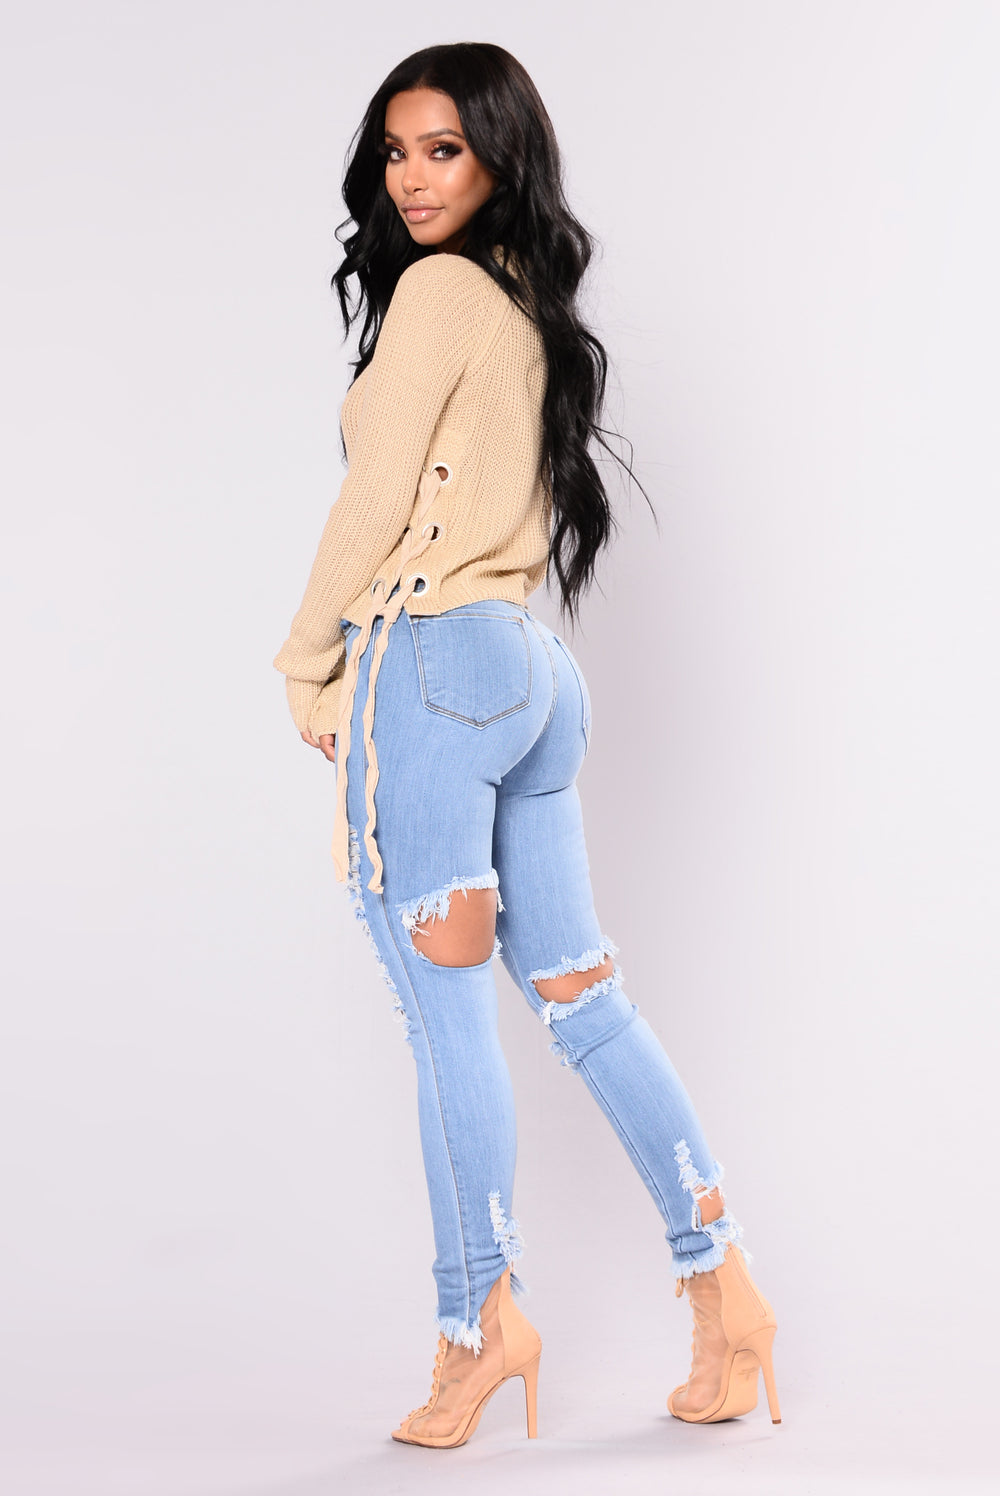 Under A Lot Of Distress Jeans - Medium Blue